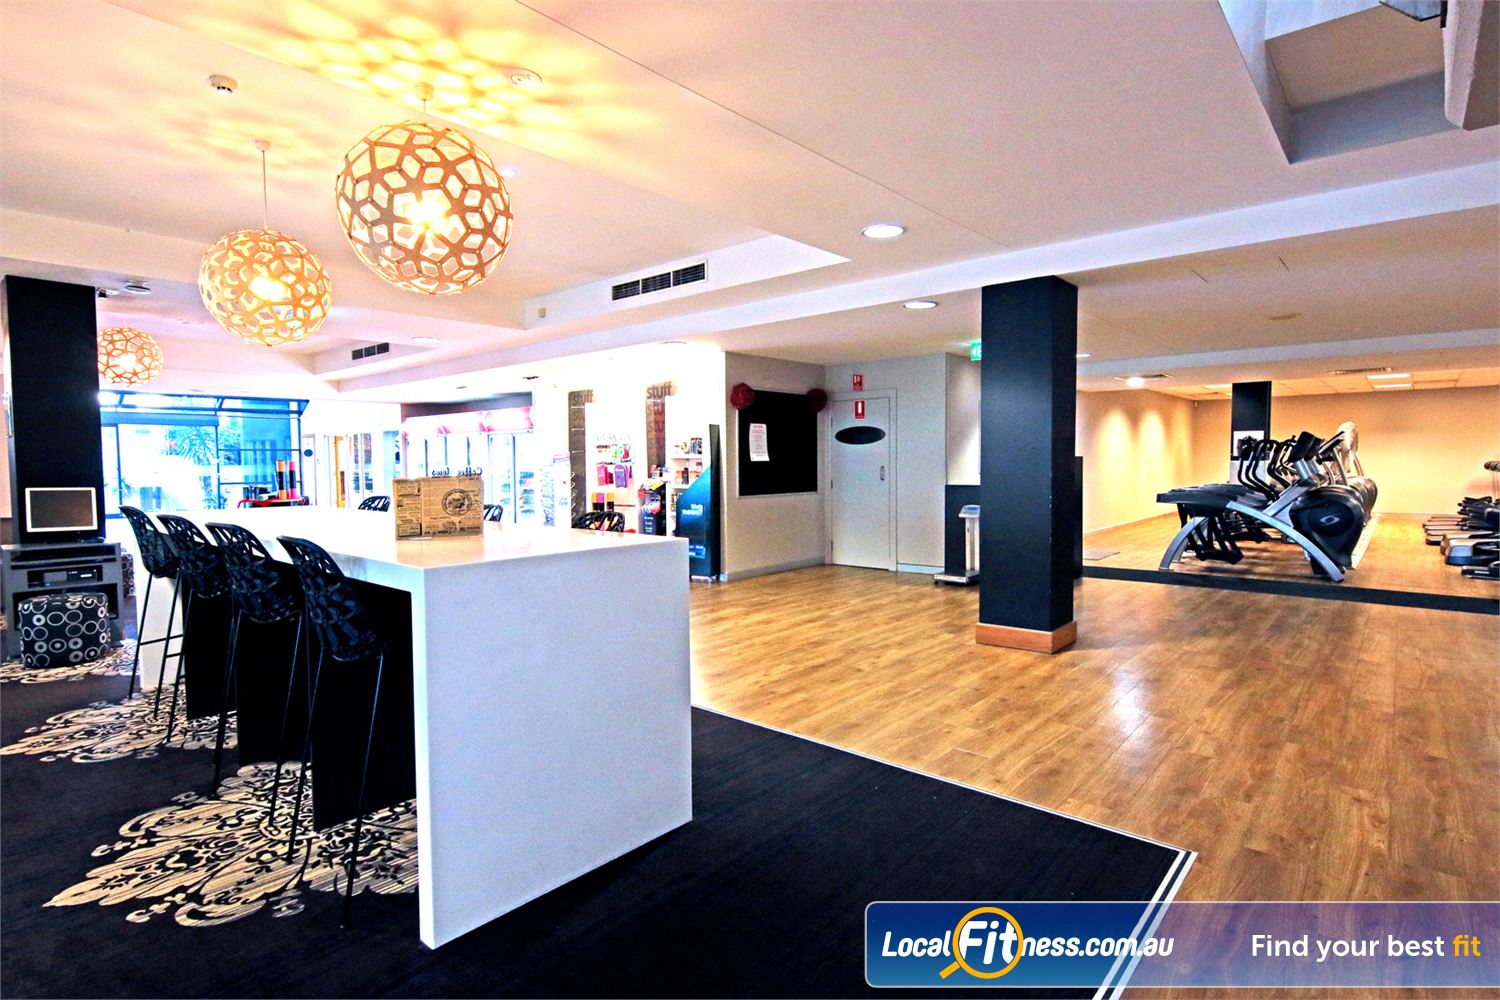 Fitness First Carindale Read the paper or socialise in our members lounge.